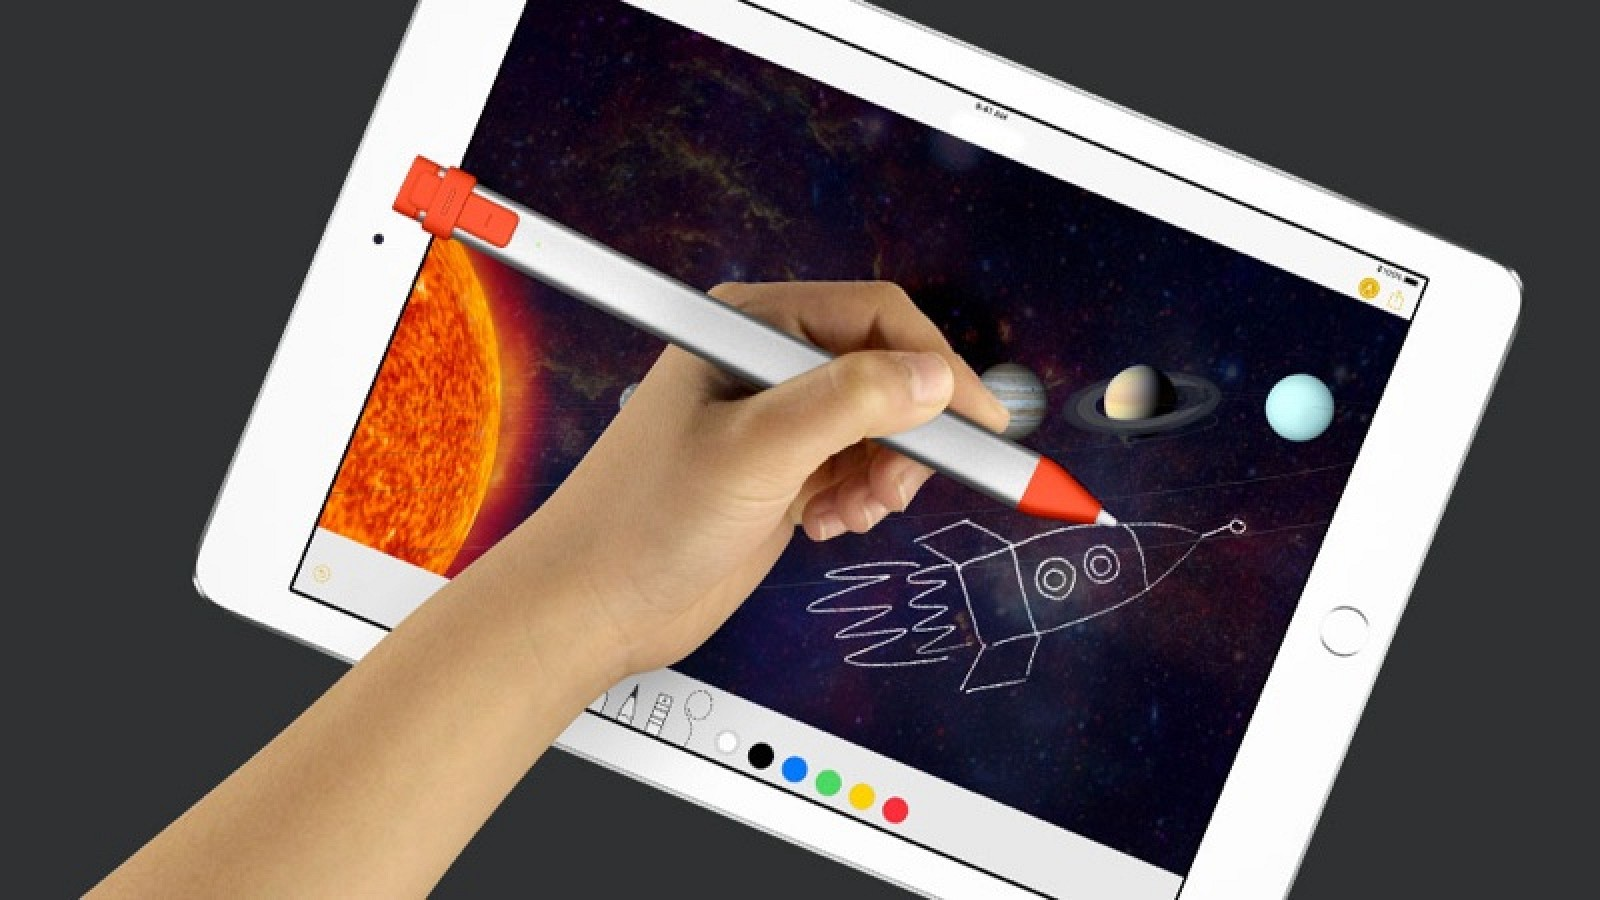 86af05d0e5e Logitech Announces $49 Crayon Stylus and $99 Rugged Combo 2 Case for  9.7-Inch iPad - MacRumors